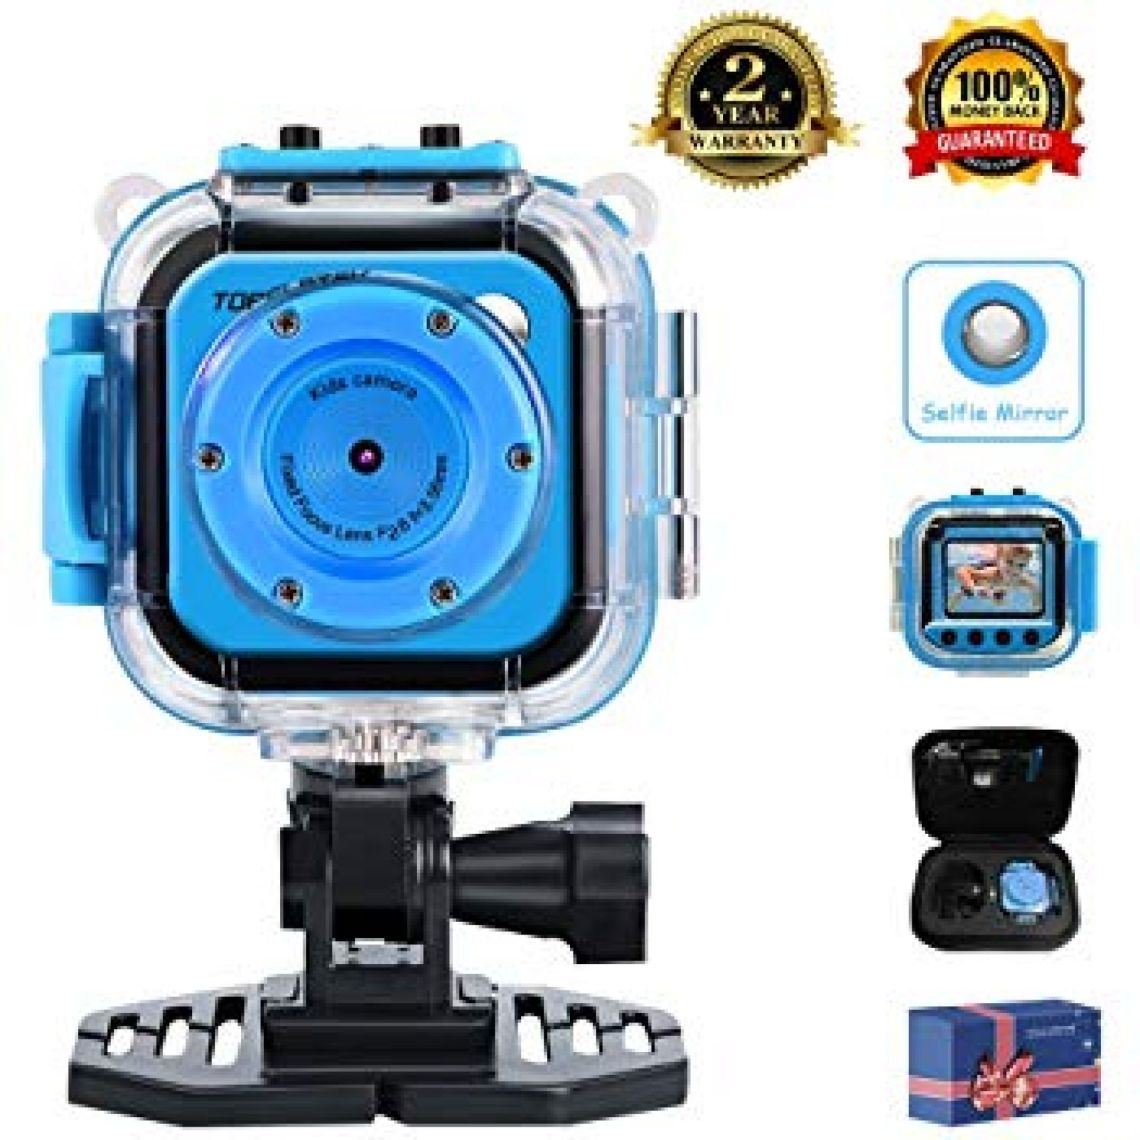 "Amazon.com: TOPELOTEK Kids Digital Action Camera Waterproof Mini Camera 1.77""LCD Screen DV Creative Toy for Children's Day Birthday Gift (Blue): Toys & Games"